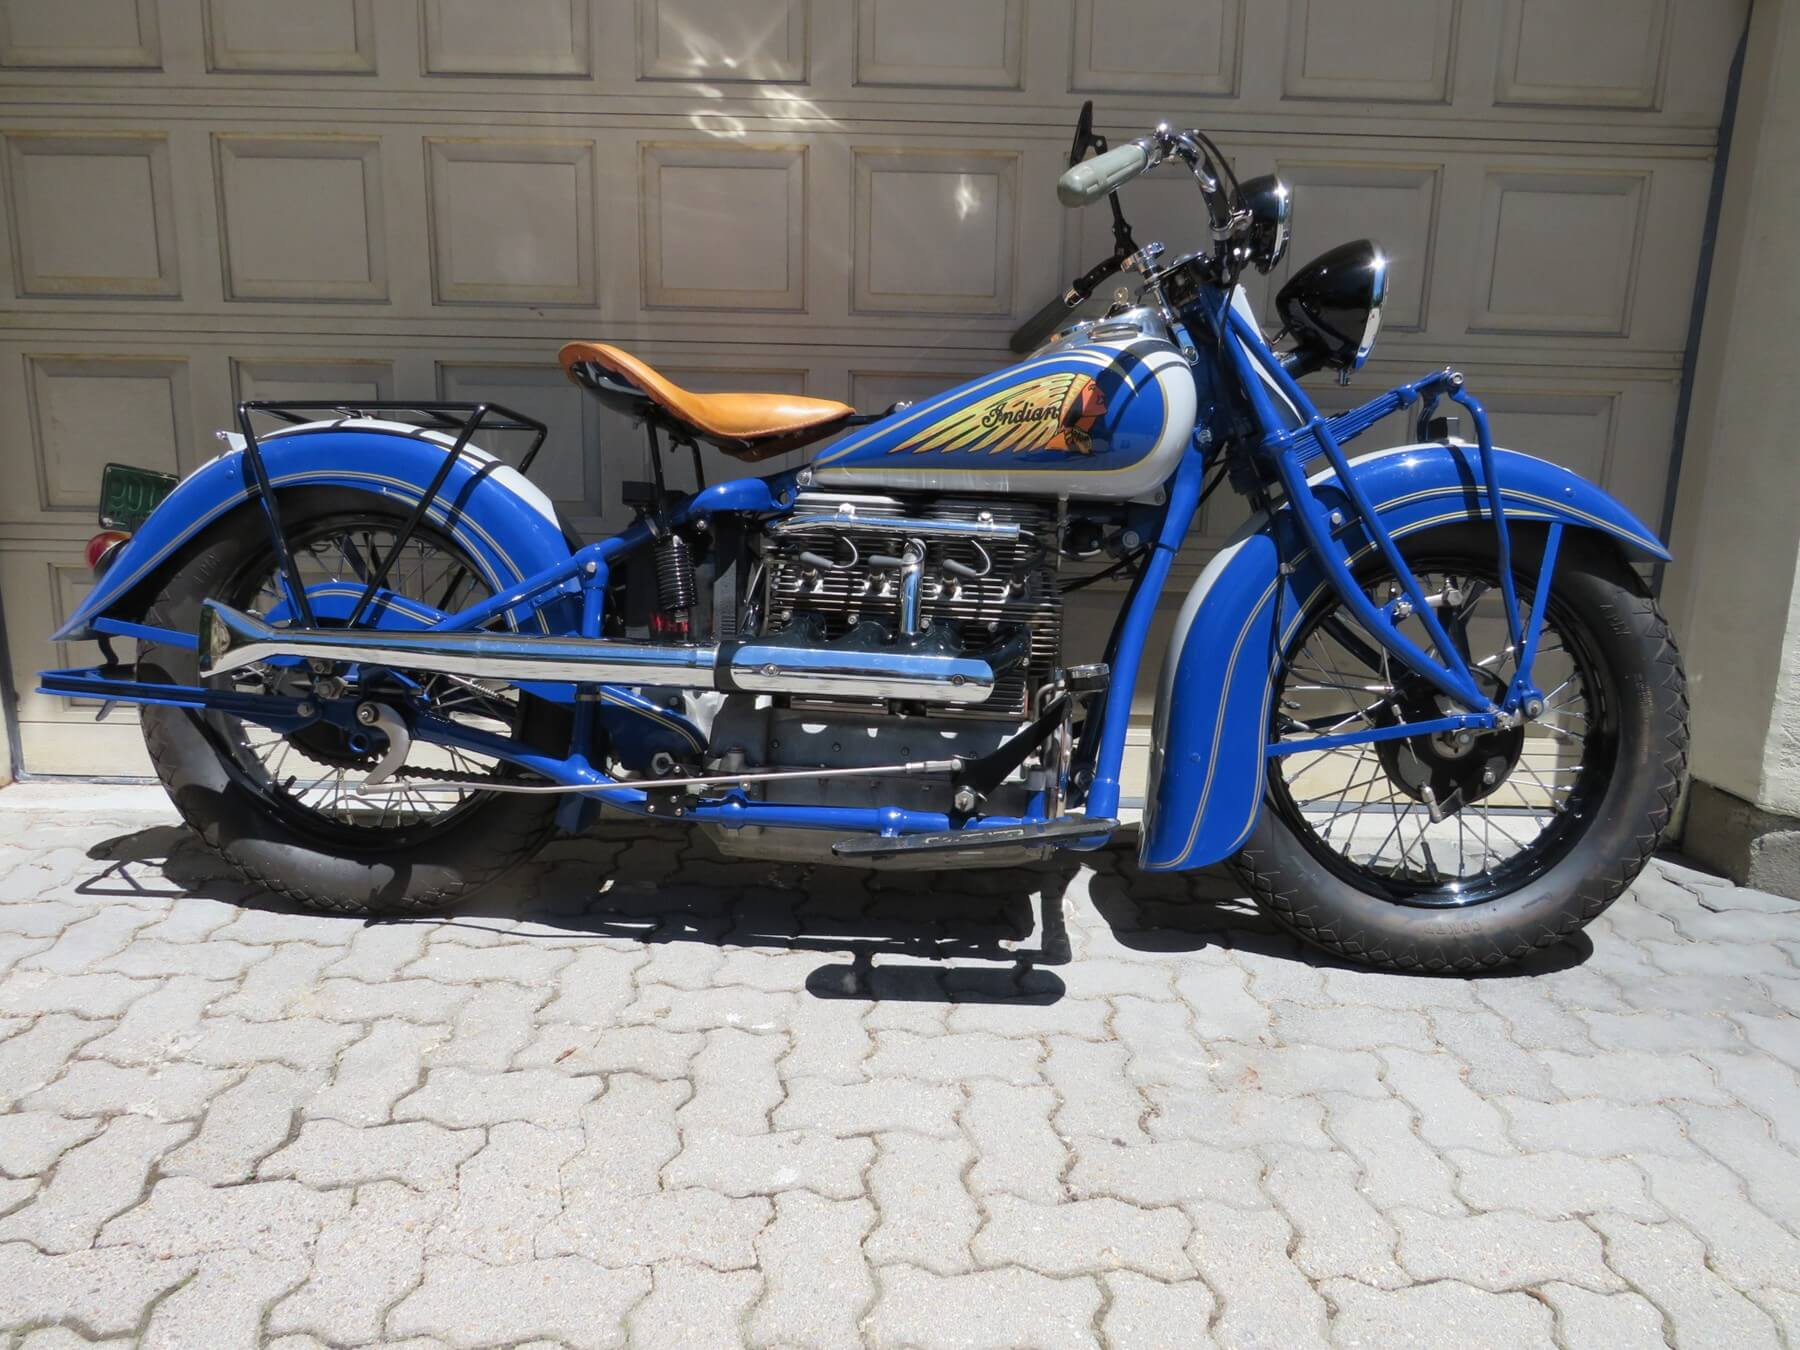 1938 Indian Four – Castoro Col — SOLD